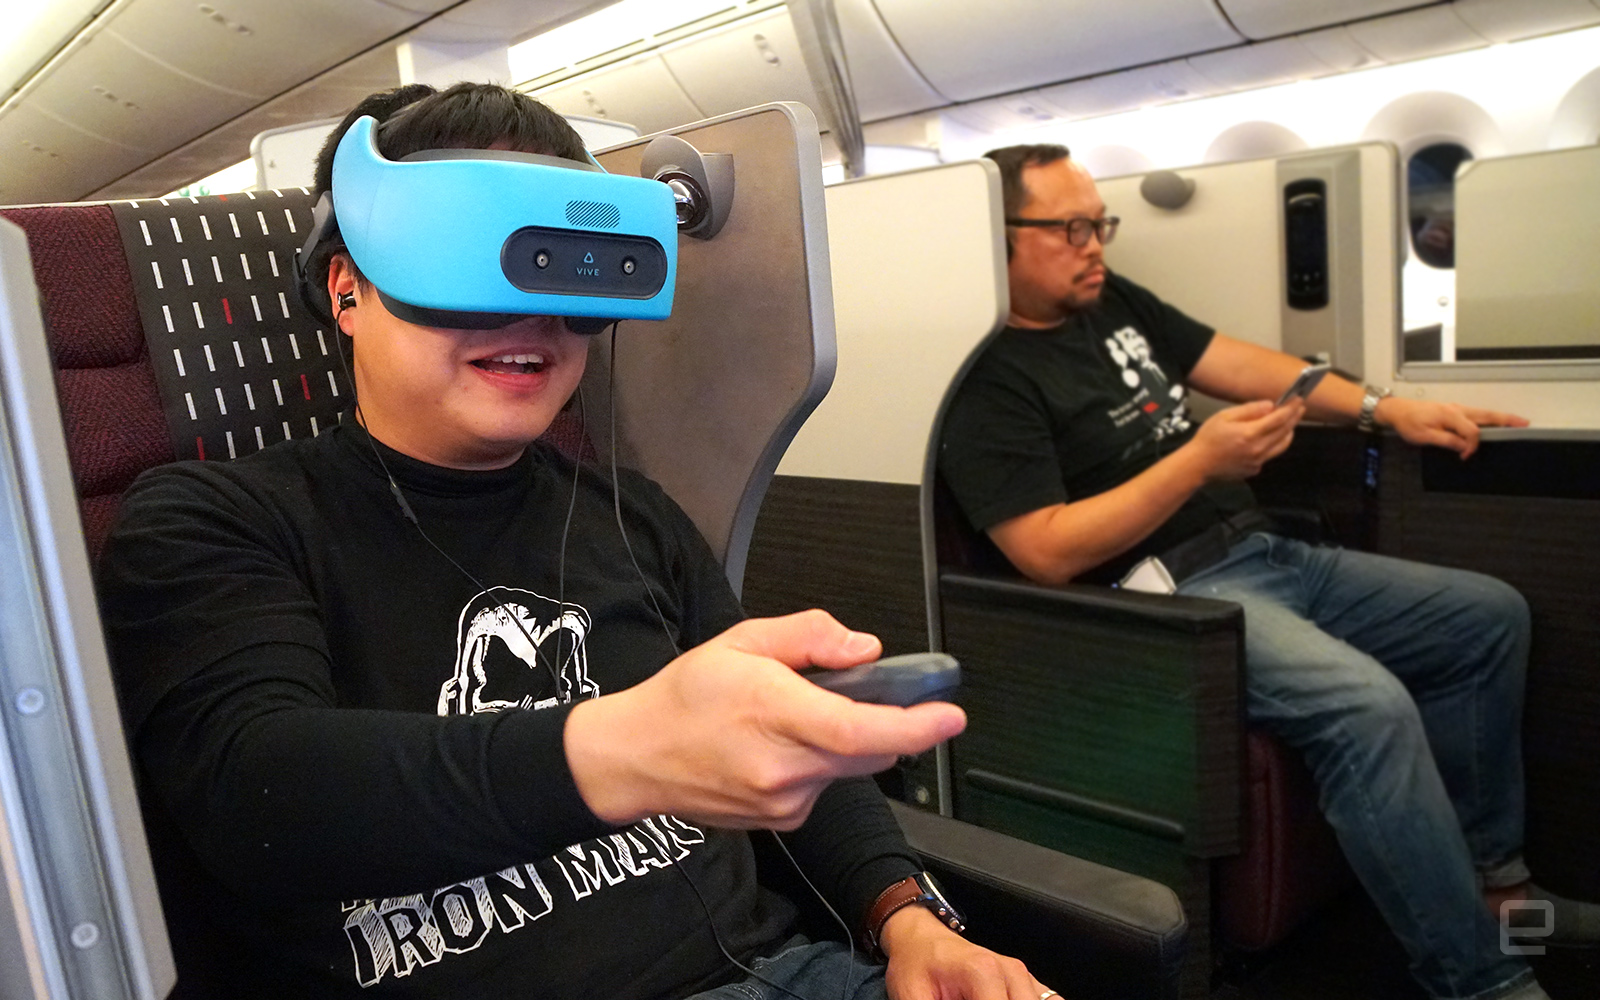 Flying with a VR headset isn't as dorky as it sounds | Engadget